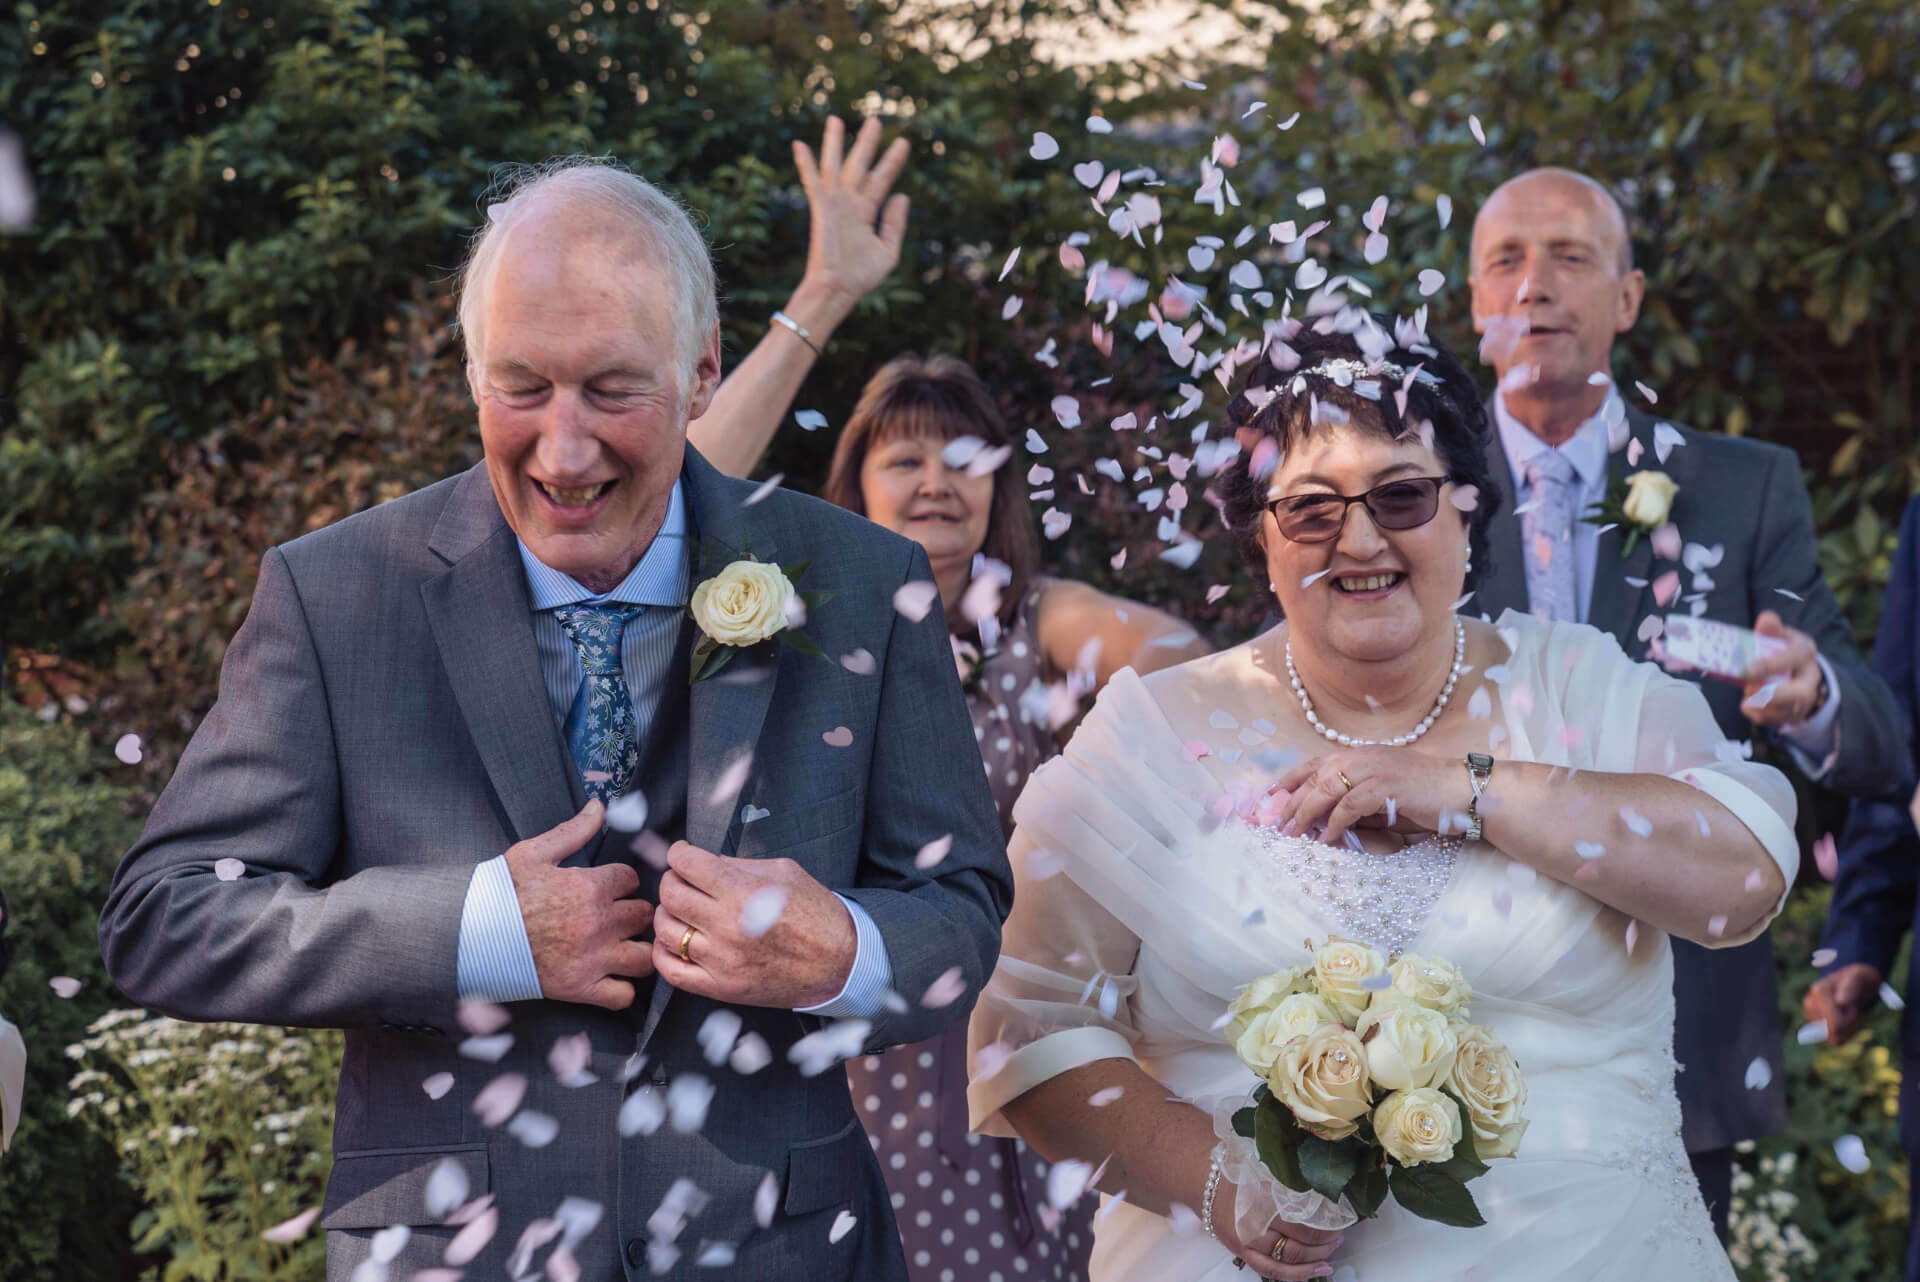 The Bride and Groom covered in confetti - Woodlands Hotel, Spalding - Wedding Photography by Slice of Life Photography